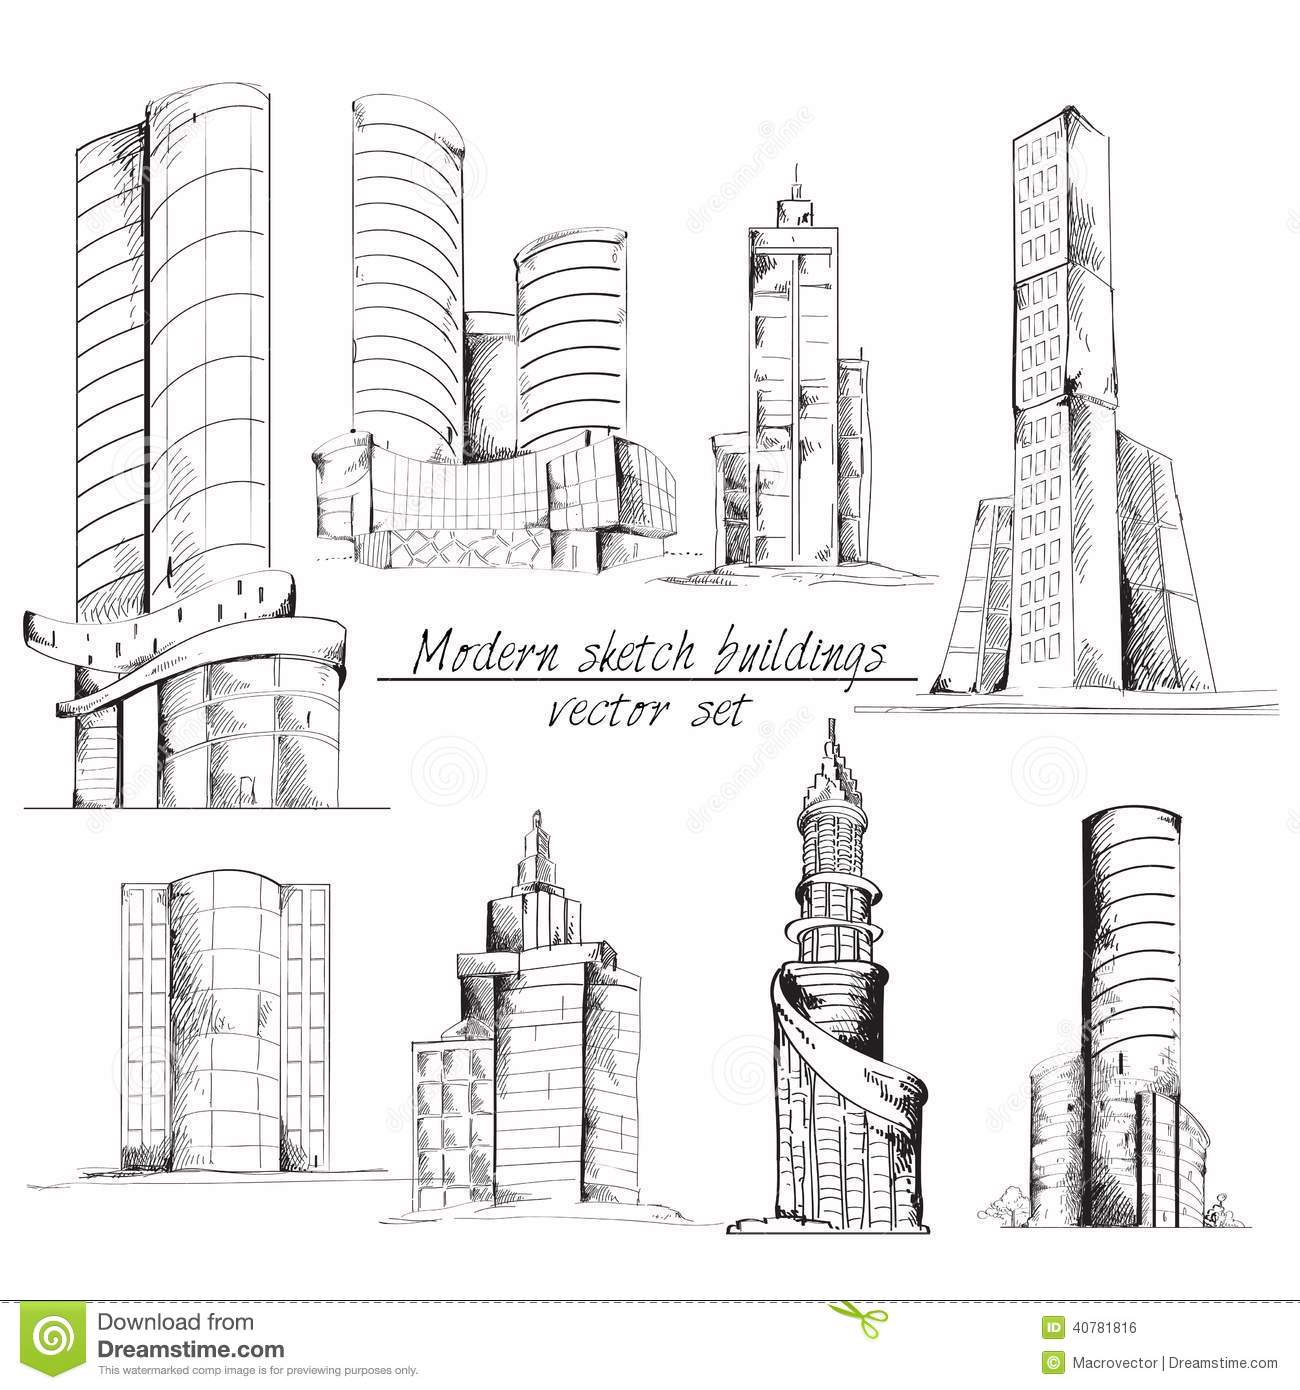 Modern Sketch Building Stock Vector. Image Of Architecture - 40781816